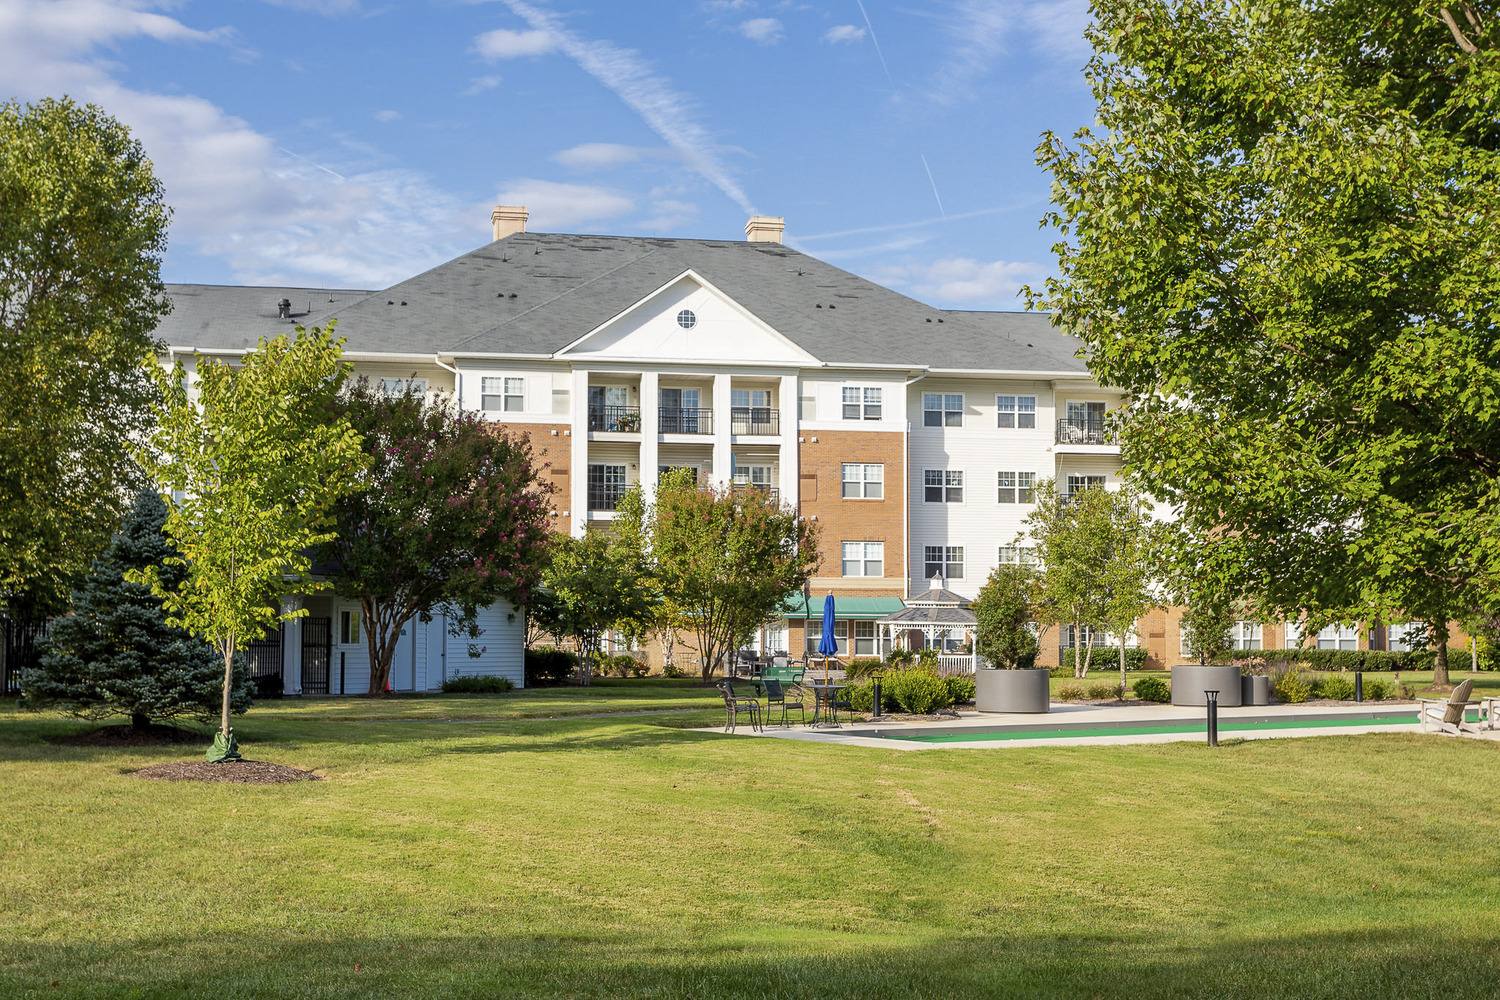 CBG builds The Evergreens at Smith Run, a 130-Unit Luxury Assisted Living Community in Fredericksburg, VA - Image #3